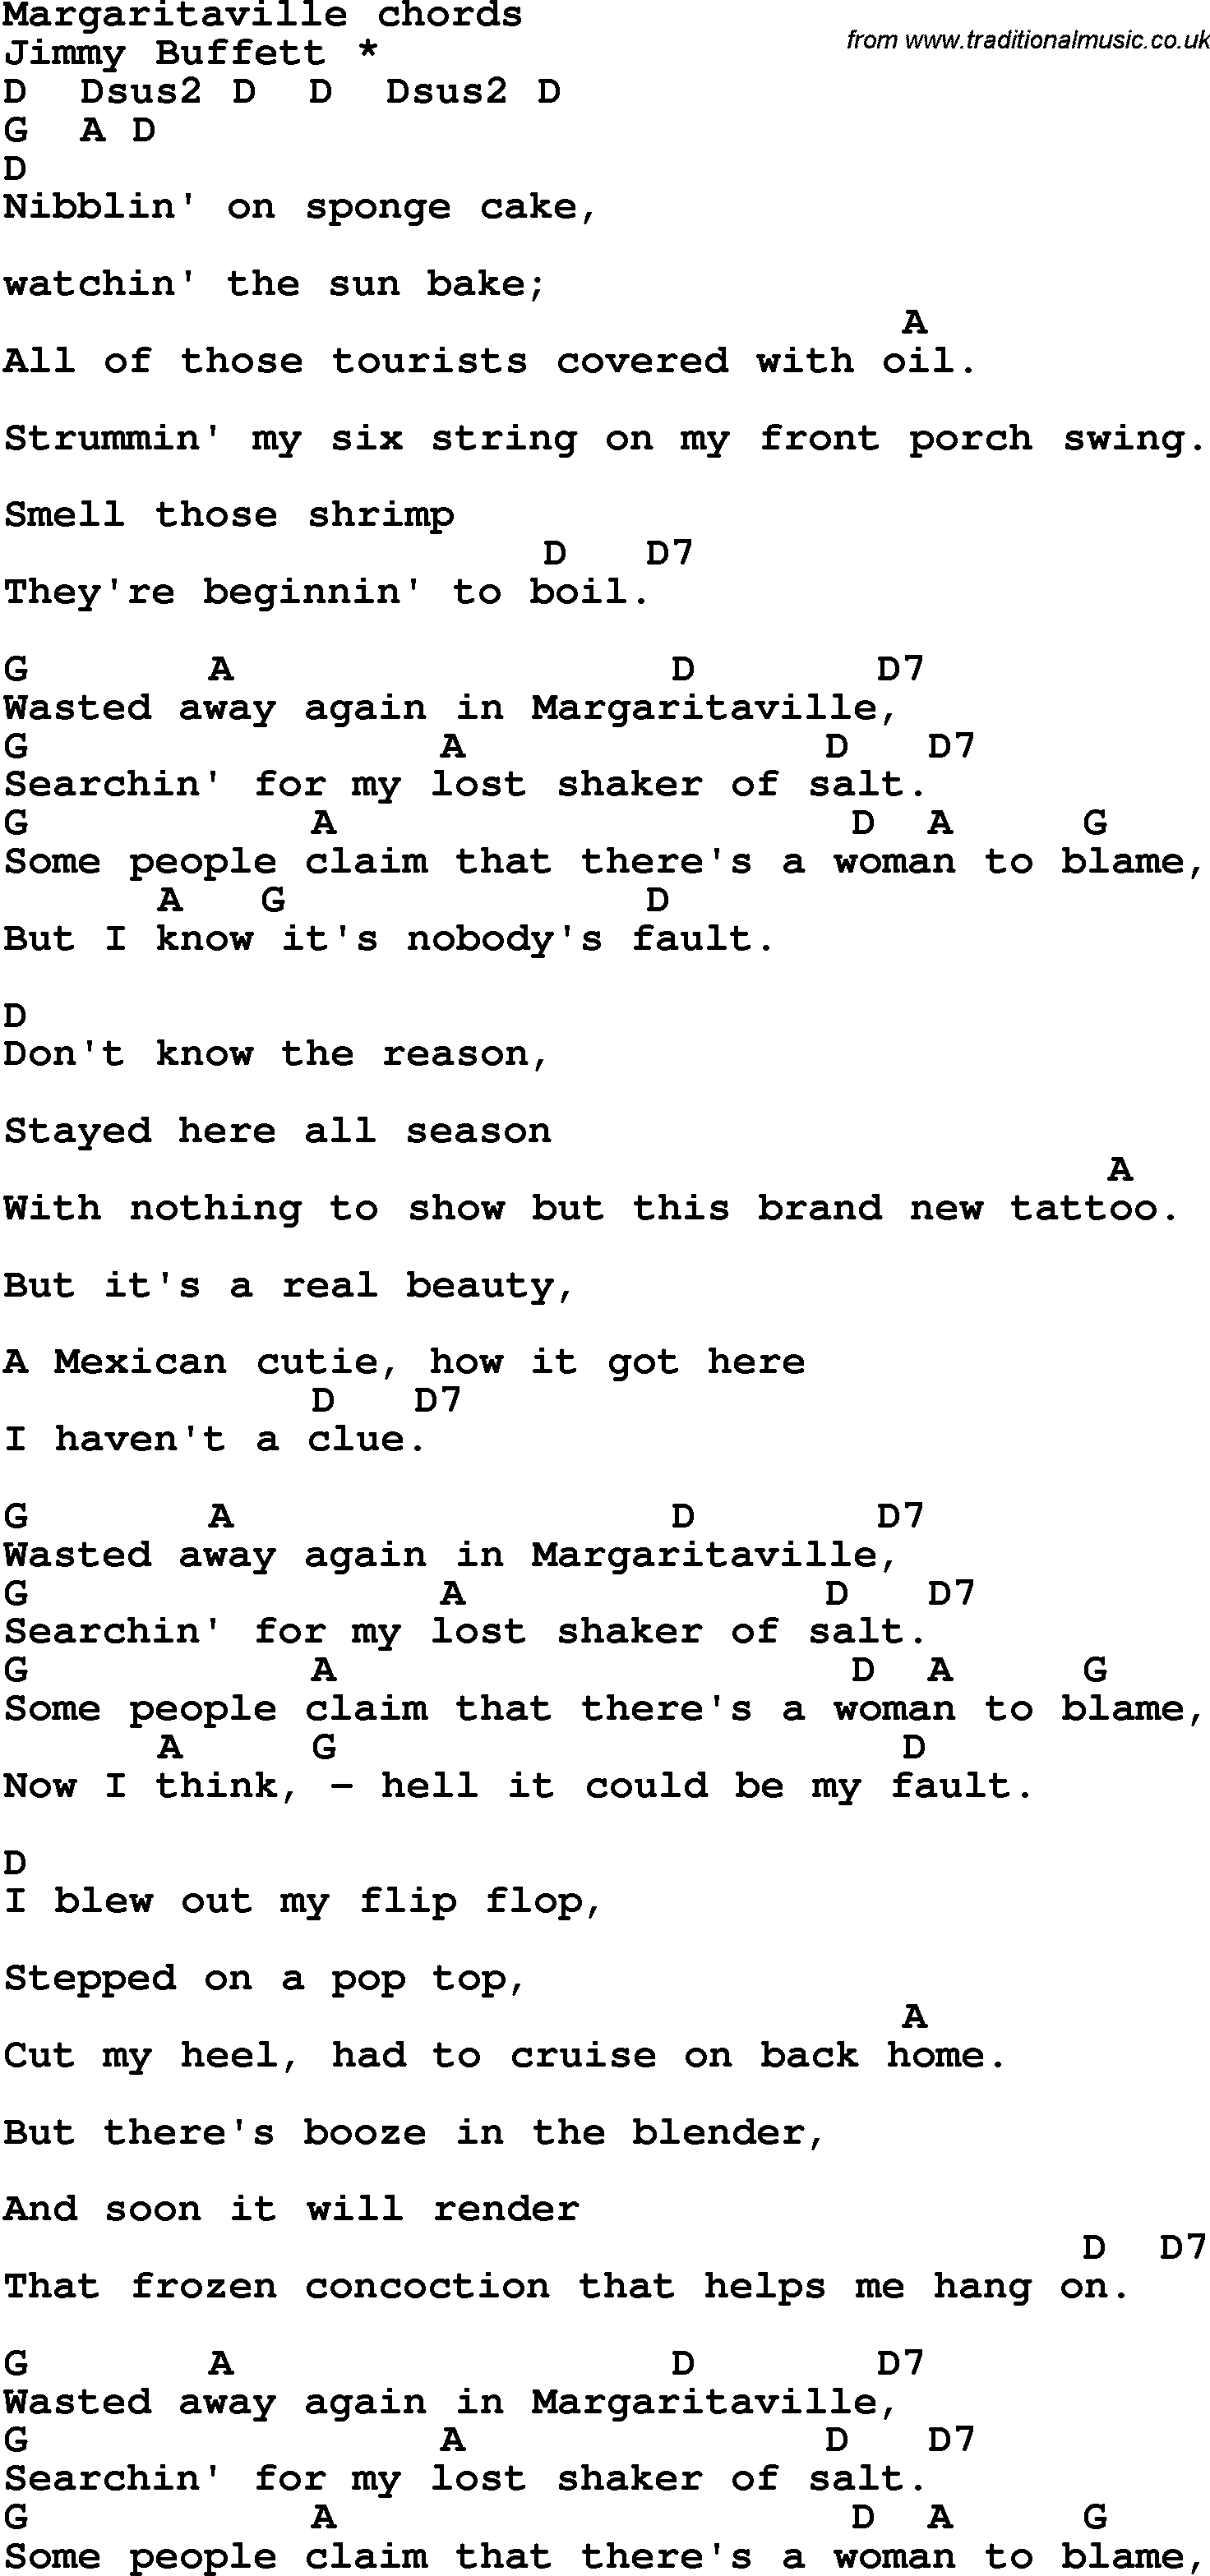 Song Lyrics With Guitar Chords For Margaritaville Tablature